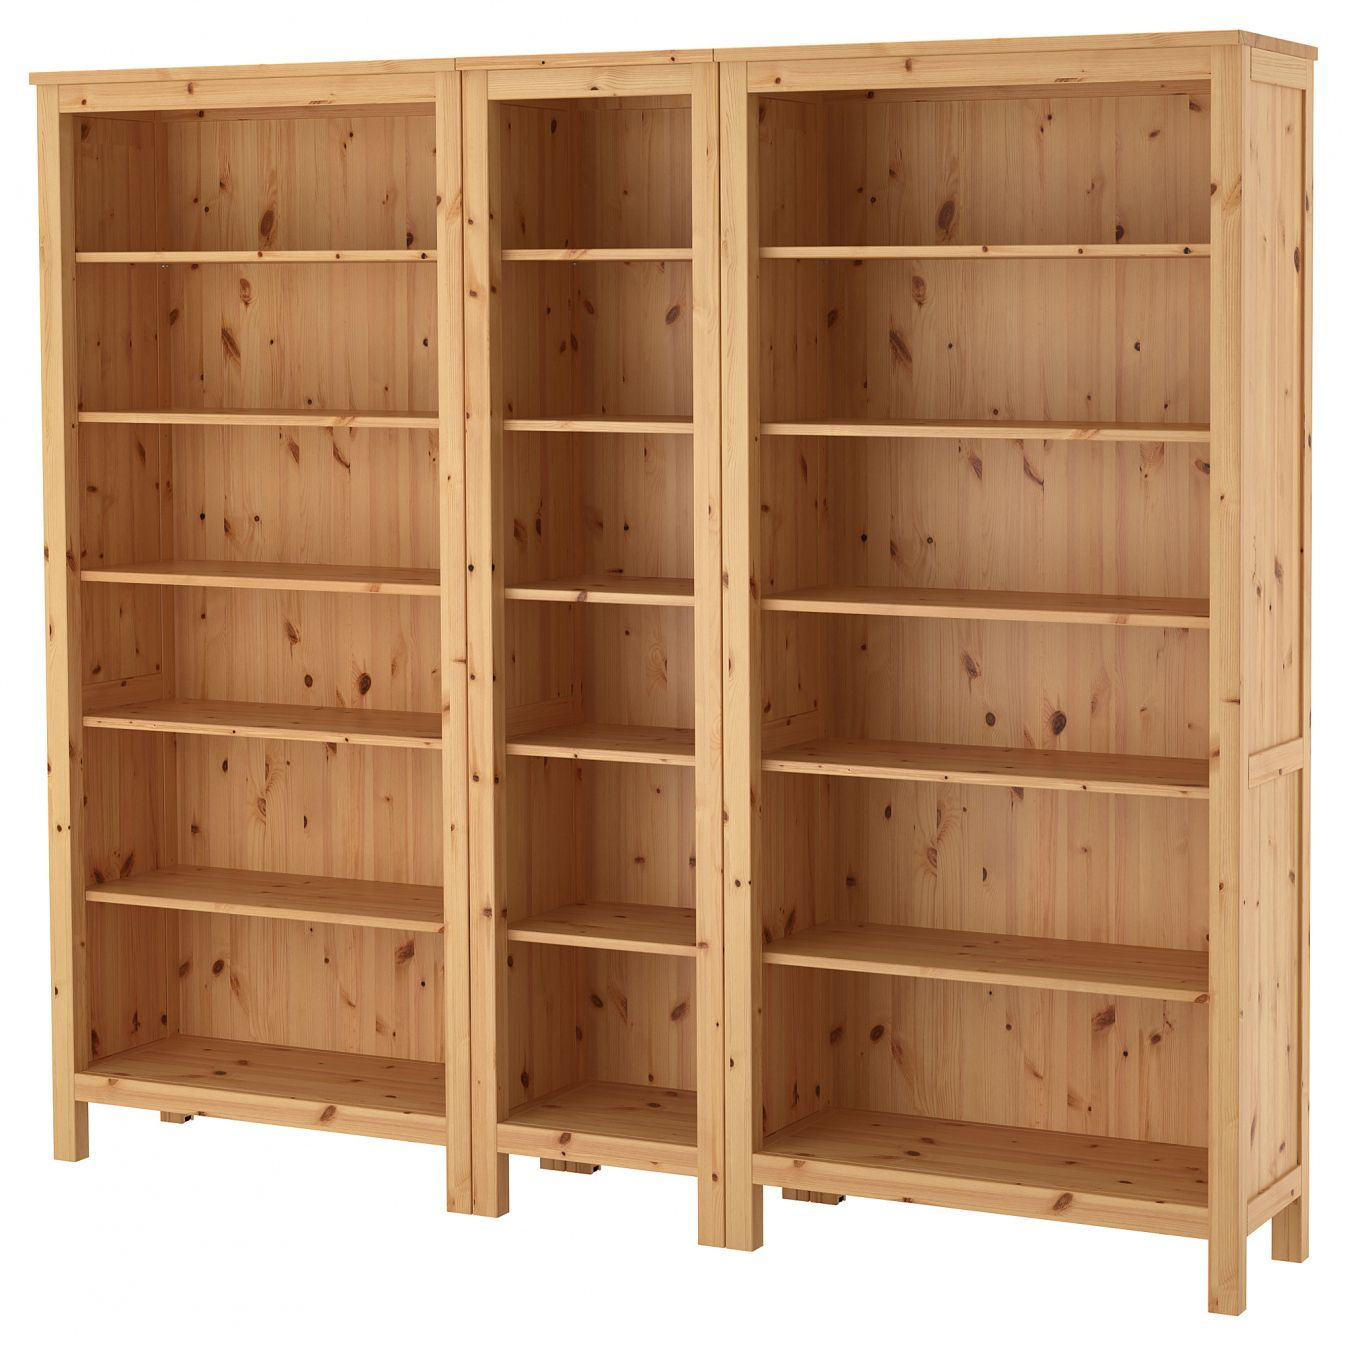 100 Pine Bookcase Ikea Contemporary Modern Furniture Check More At Http Fiveinchfloppy Com Pine Bookcase Ikea Hemnes Bookcase Ikea Hemnes Bookcase Hemnes